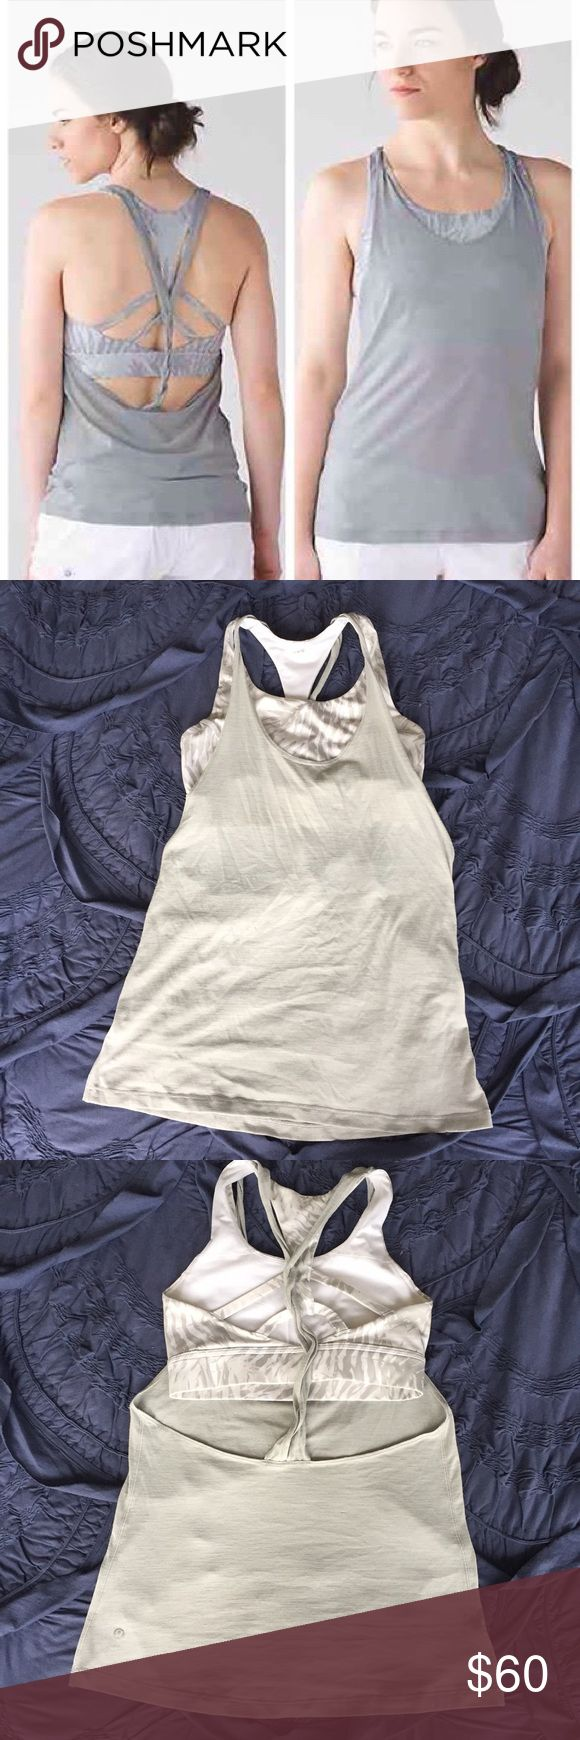 """Lululemon Twist and Toil tank Lululemon """"Twist and Toil"""" tank, size 4. Heathered seal grey tank with attached sports bra in palm camel white nimbus. Super cute, just too small for me now! Like new. lululemon athletica Tops Tank Tops"""